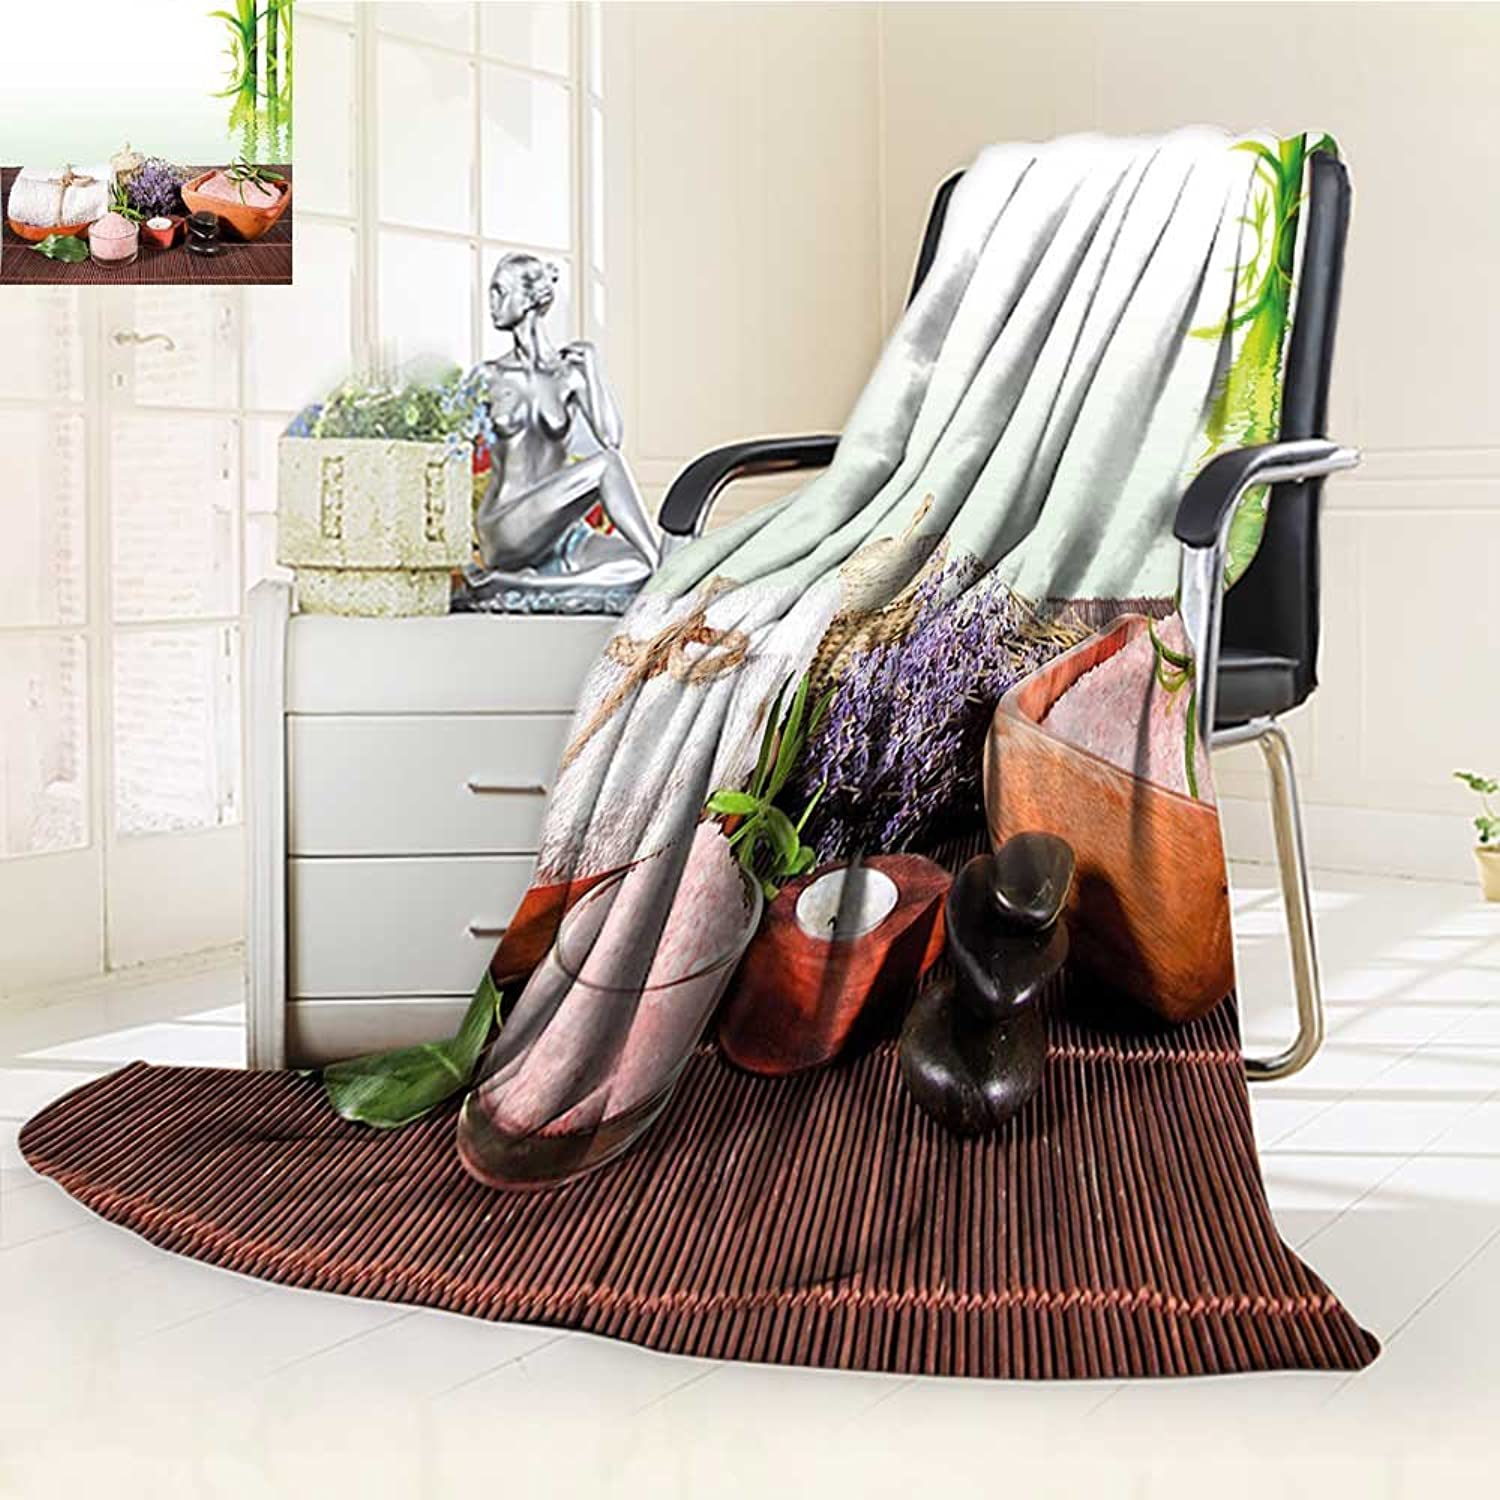 YOYI-HOME Digital Printing Duplex Printed Blanket with Towel Flowers Candle and Zen Hot Massage Stones Green White and Brown Summer Quilt Comforter  W59 x H39.5